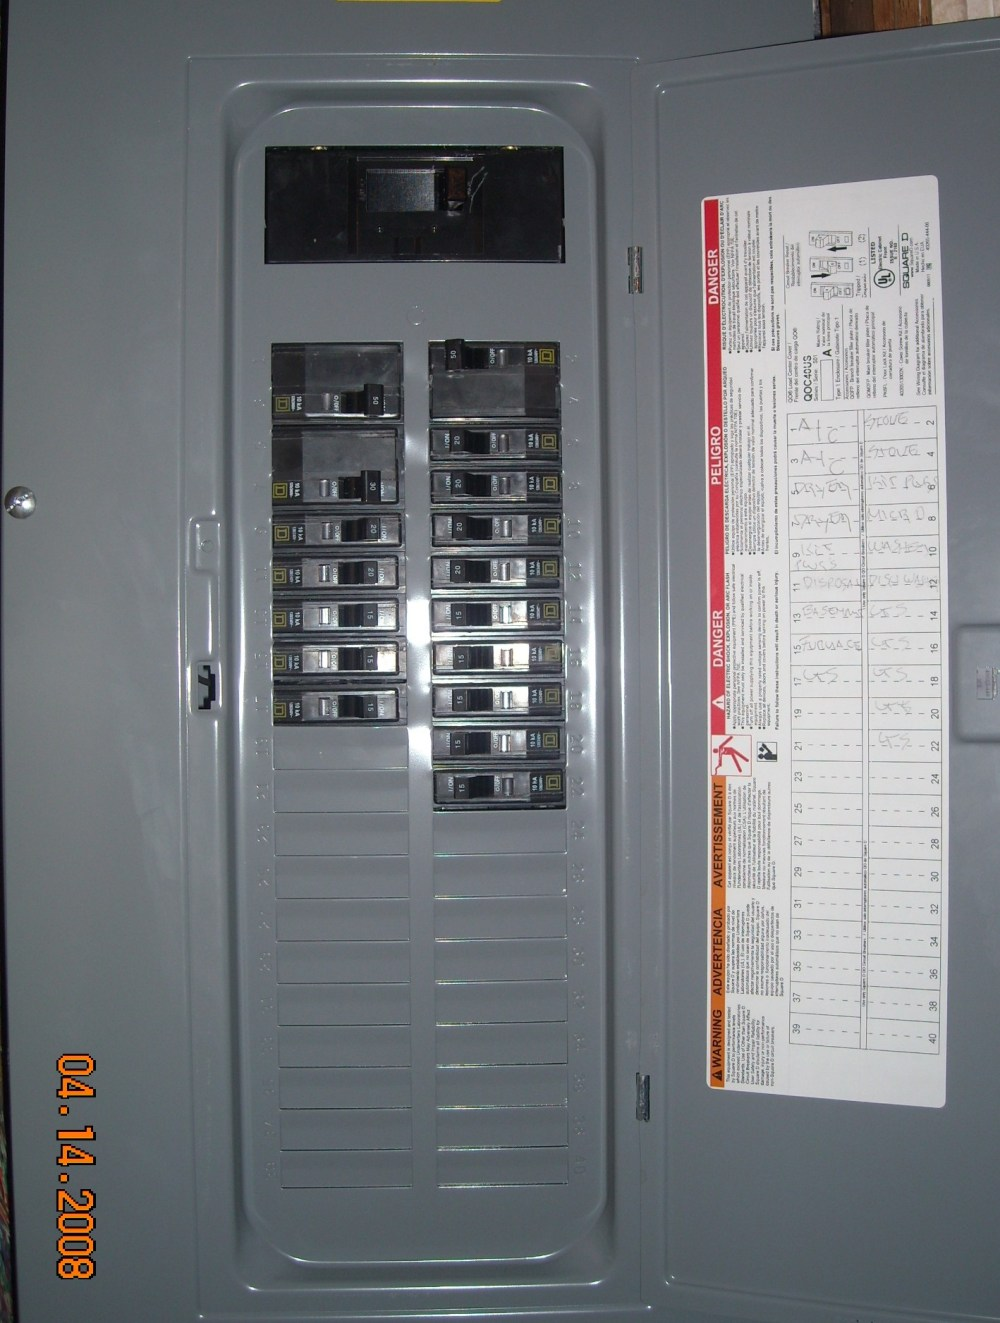 medium resolution of fuse box for house new wiring diagram house fuse box diagram fuse box for house my